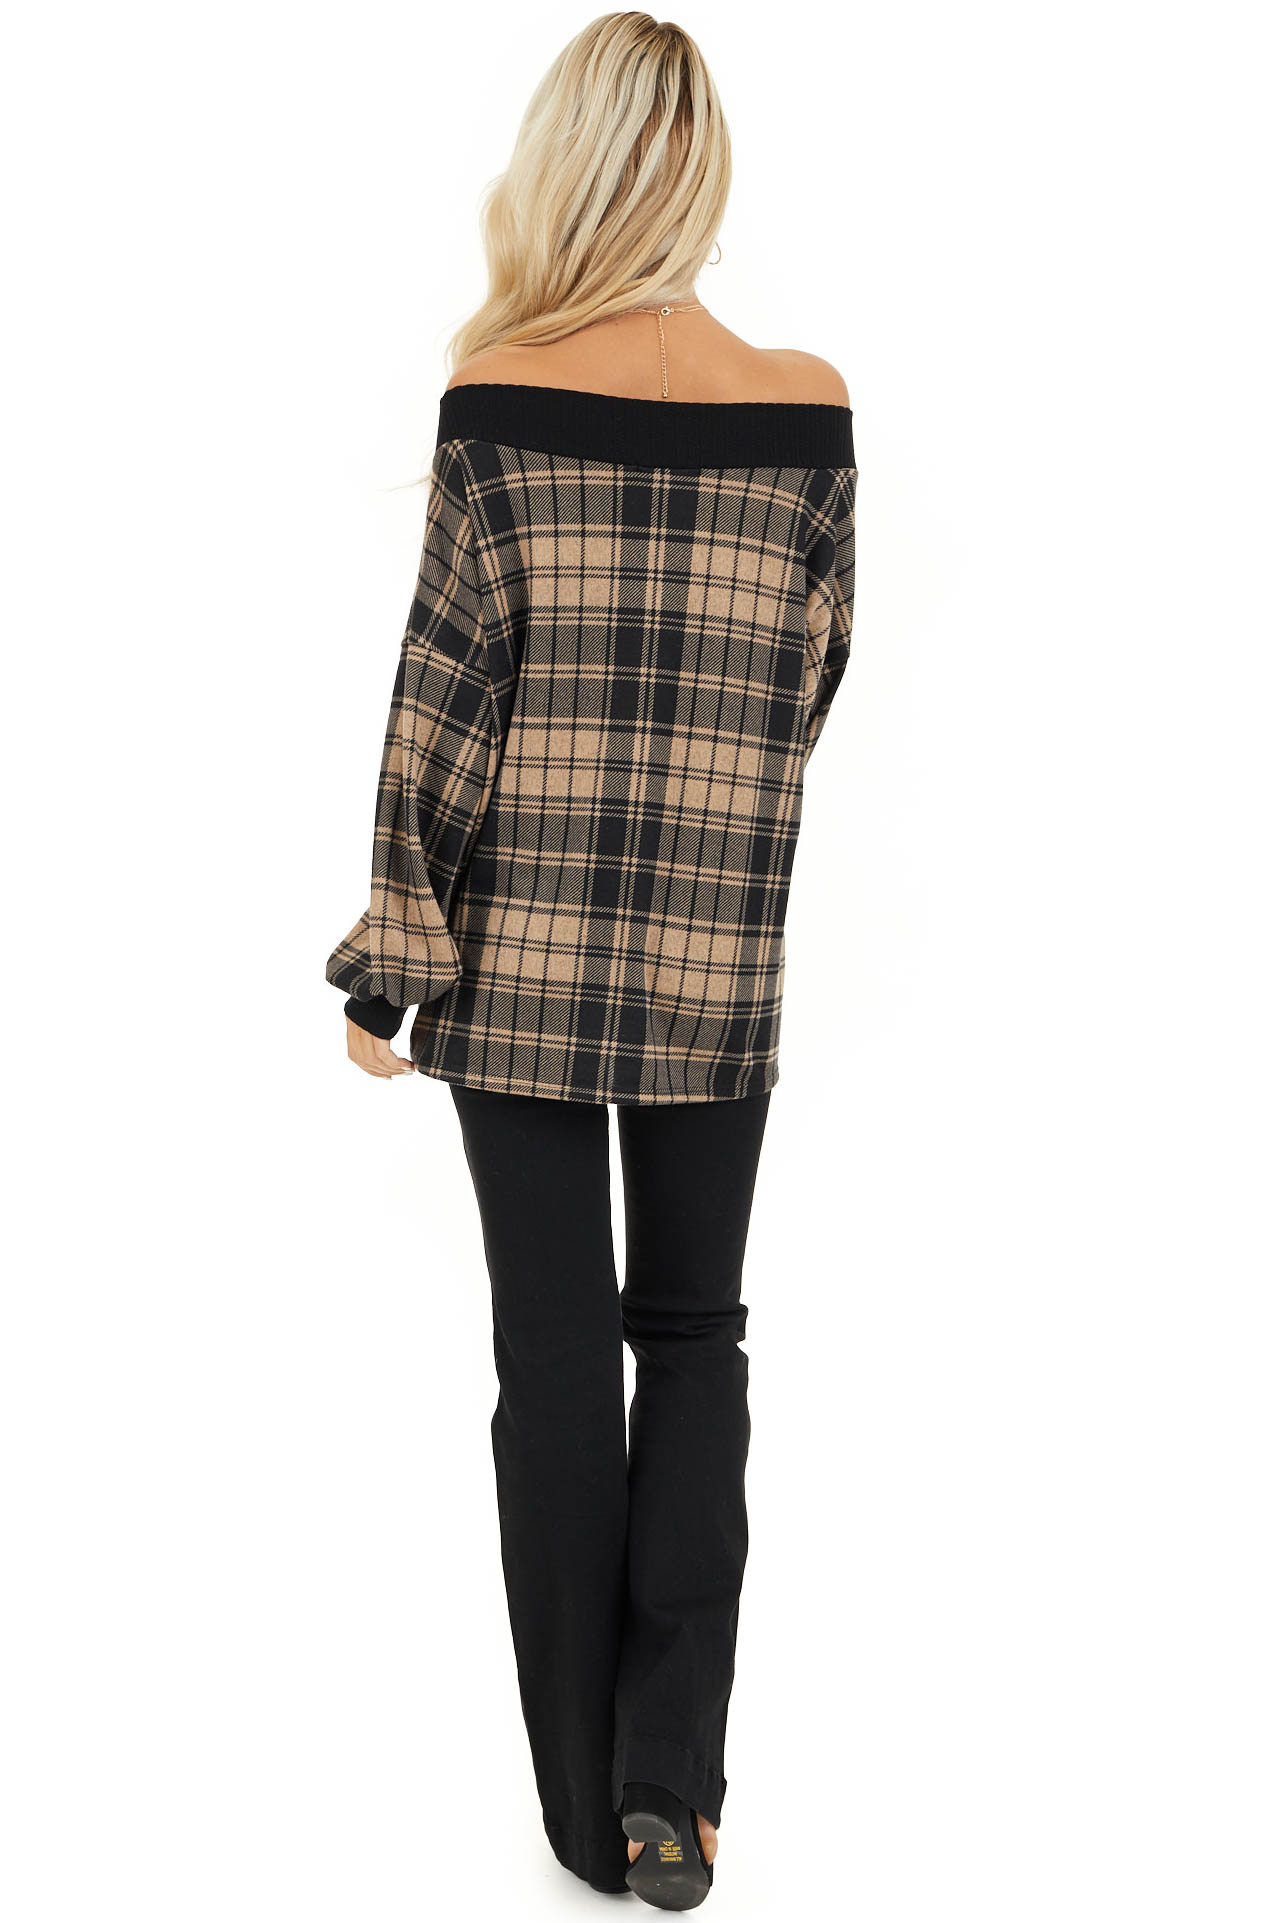 Oatmeal Plaid Off Shoulder Long Sleeve Top back full body